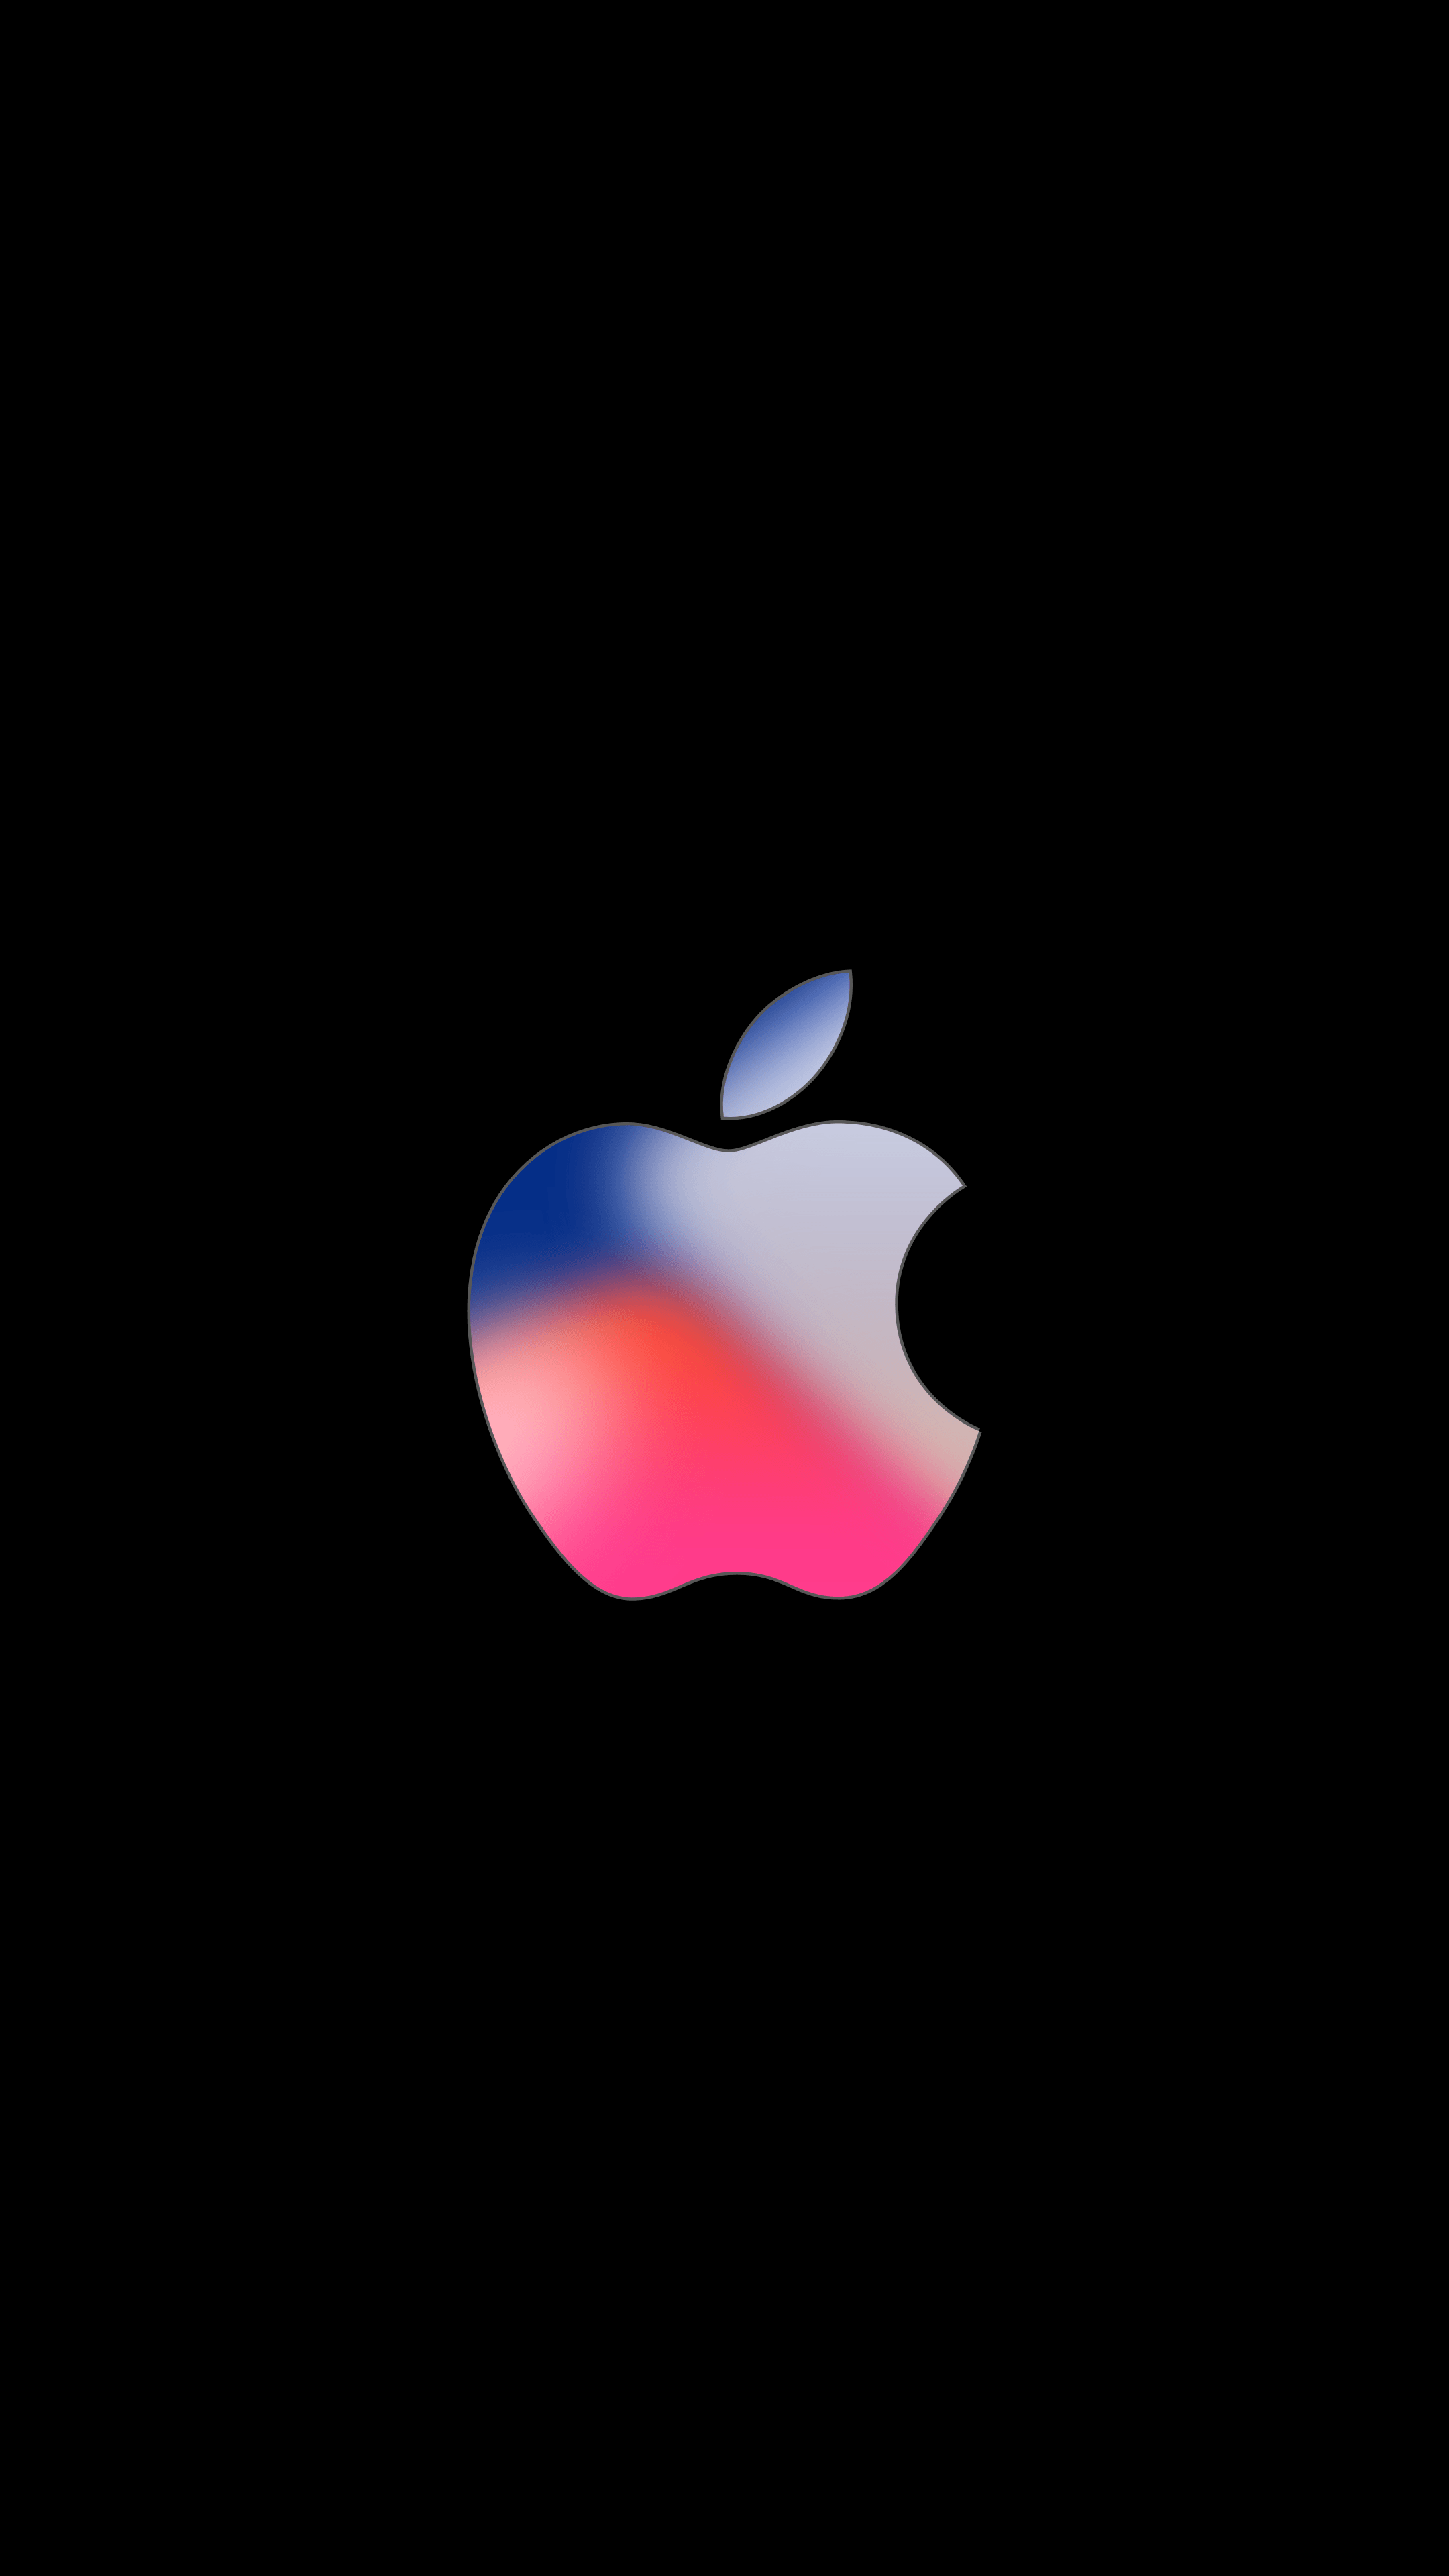 Apple Iphone Xr Wallpapers Top Free Apple Iphone Xr Backgrounds Wallpaperaccess